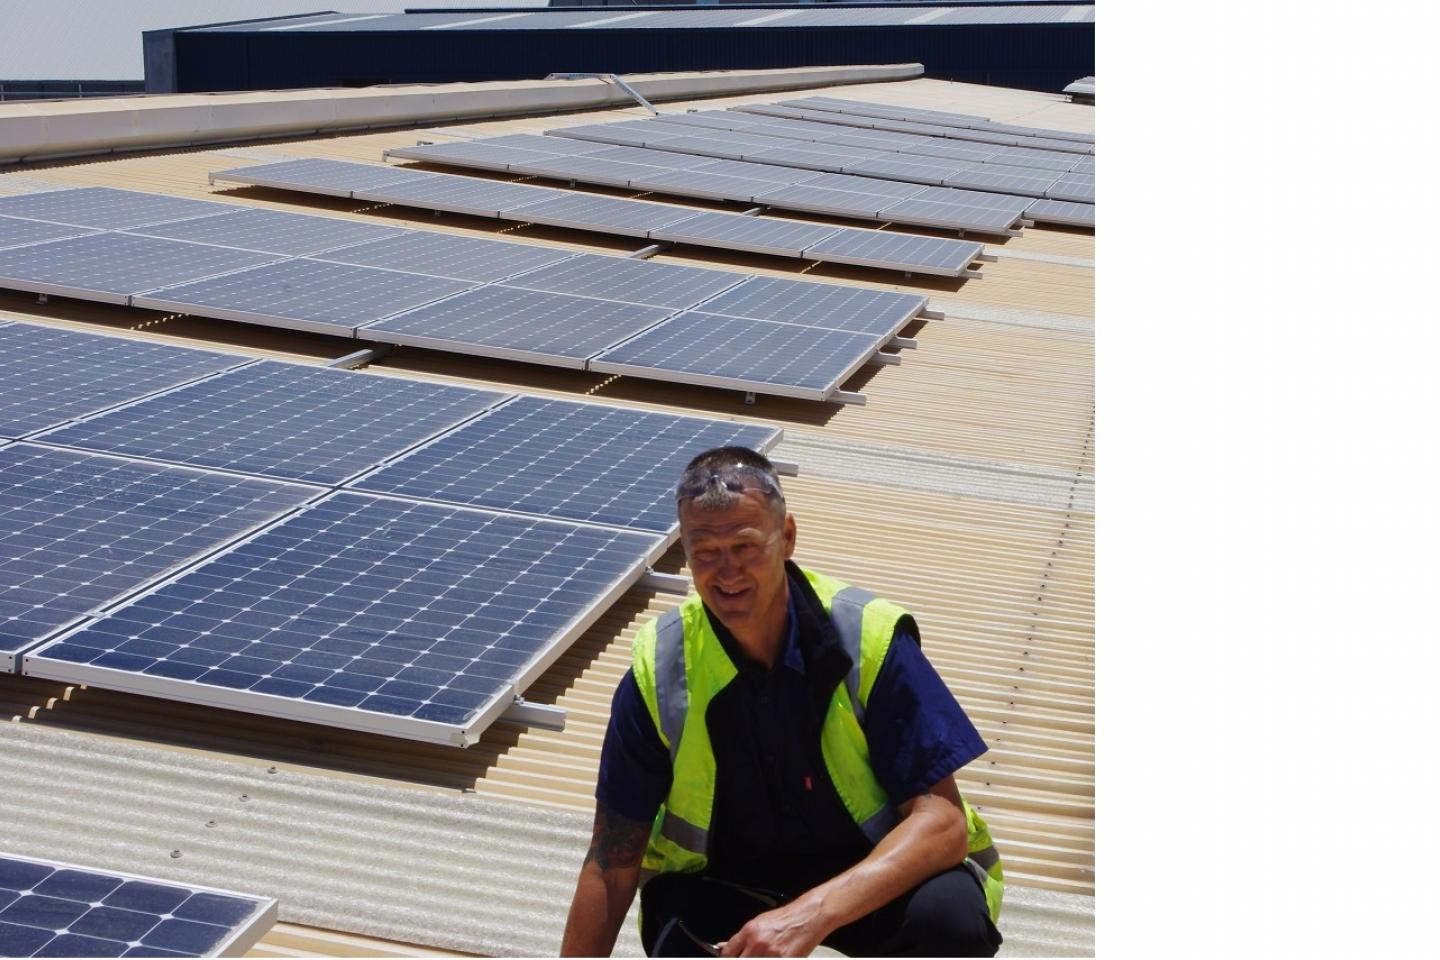 Ausplow operations manager at Naval Base, Gary Andrews, checks out the recently-installed solar panels on the roof of the main factory.